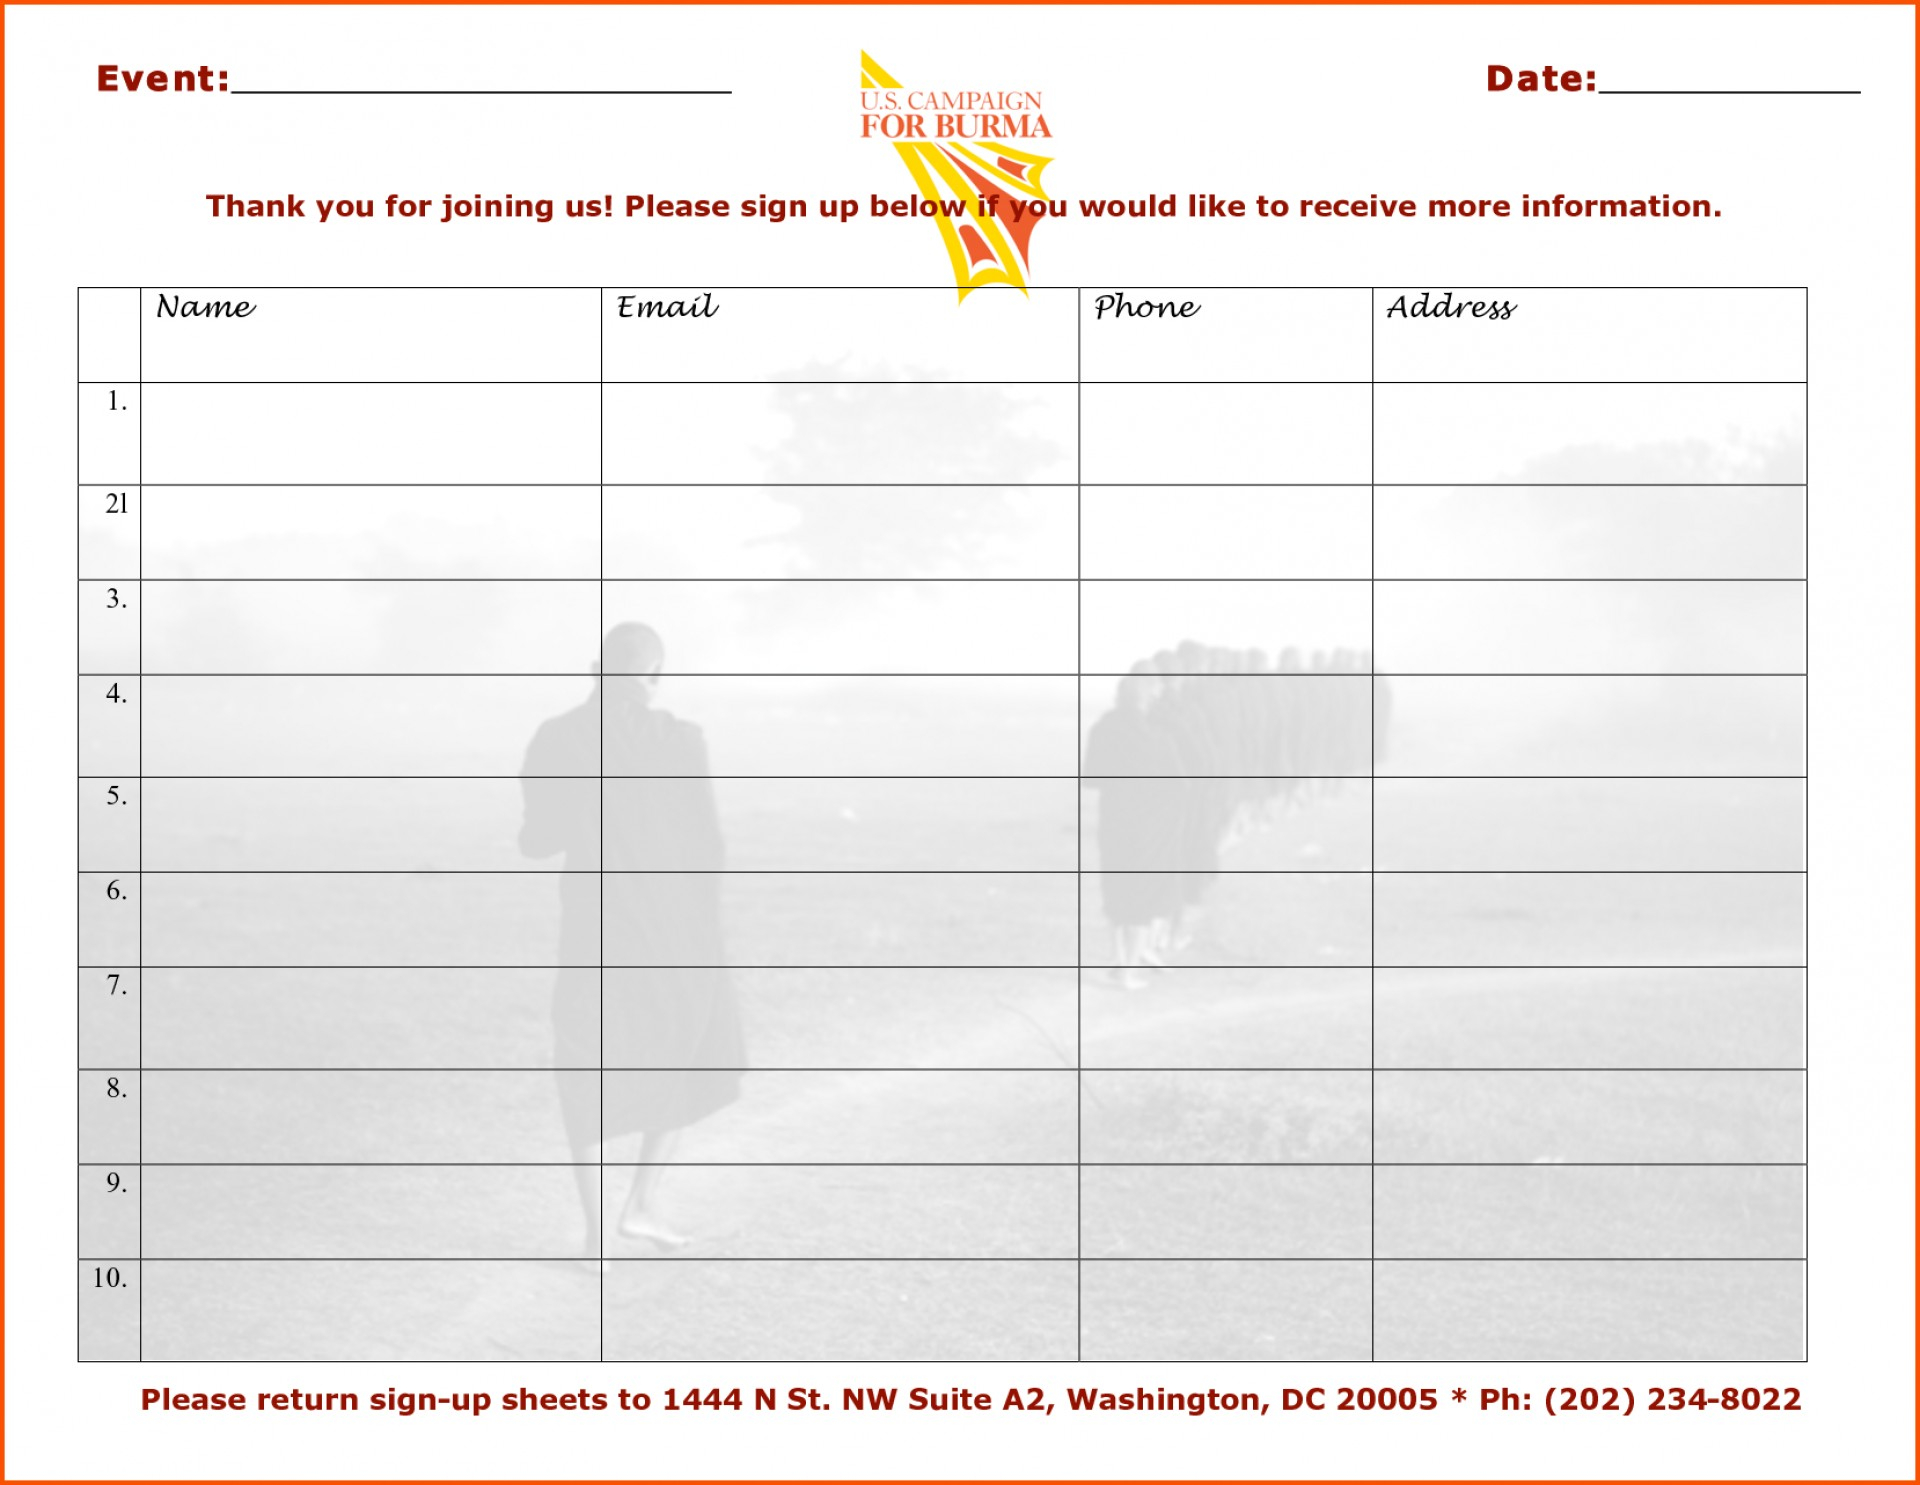 013 Event Sign In Sheet Template Survey Words Word Templates Free Up - Free Printable Sign In Sheet